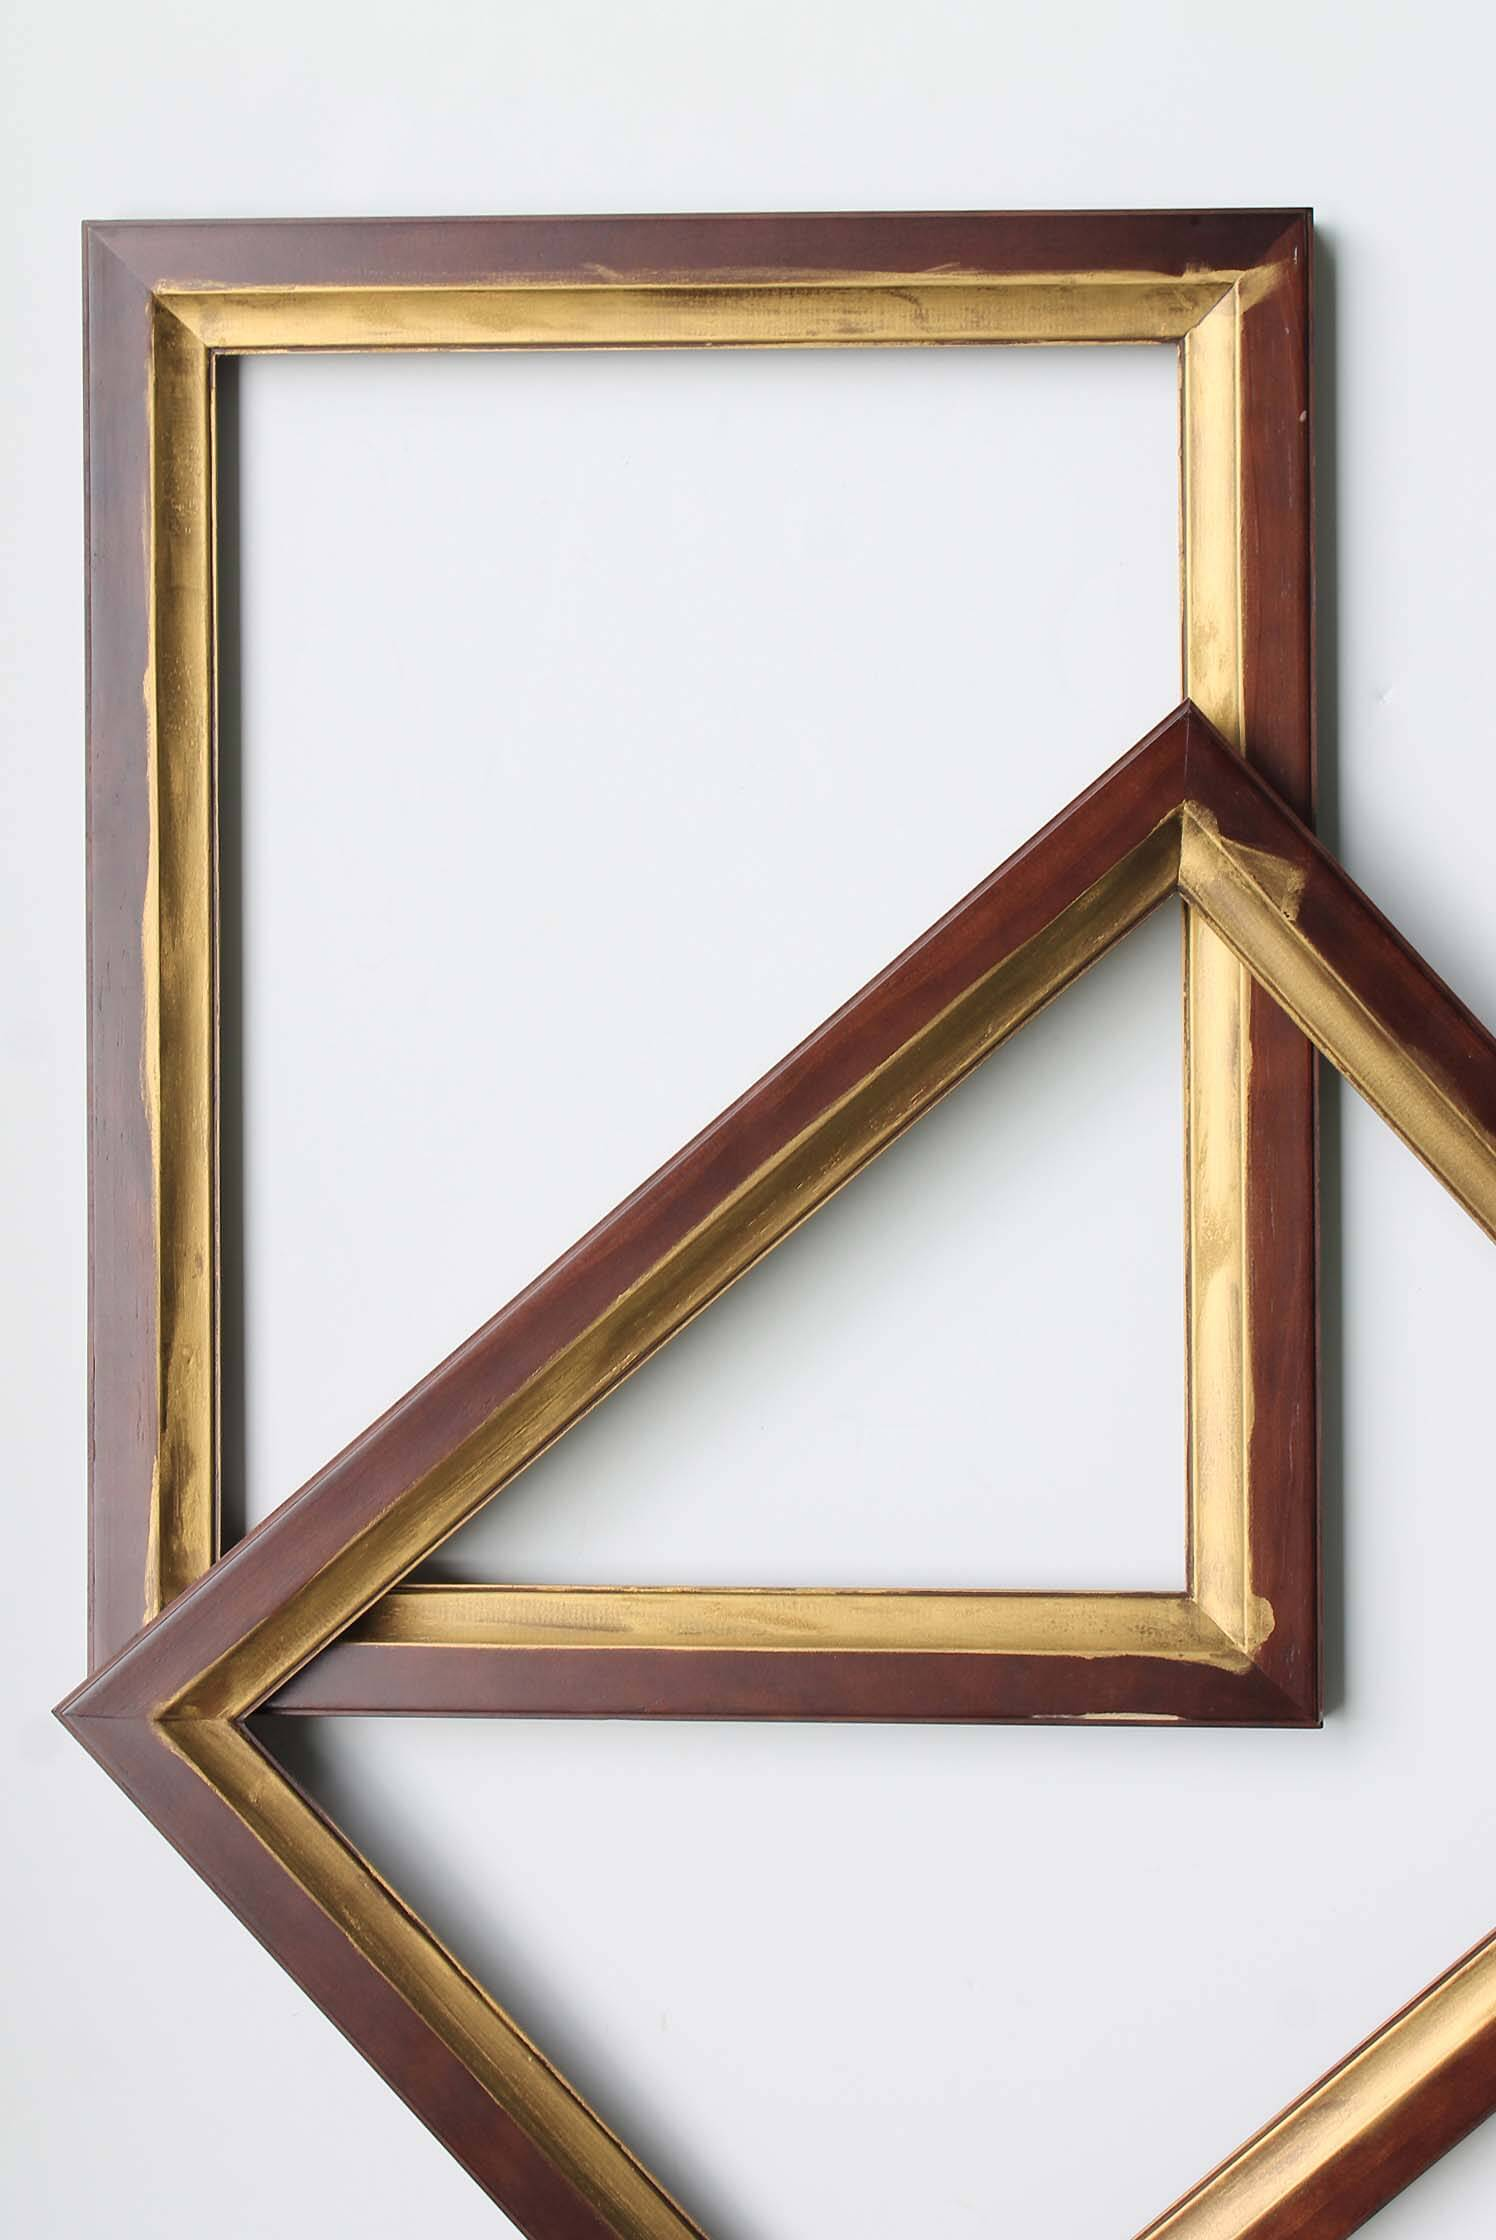 Rub-n-buff gold on a frame